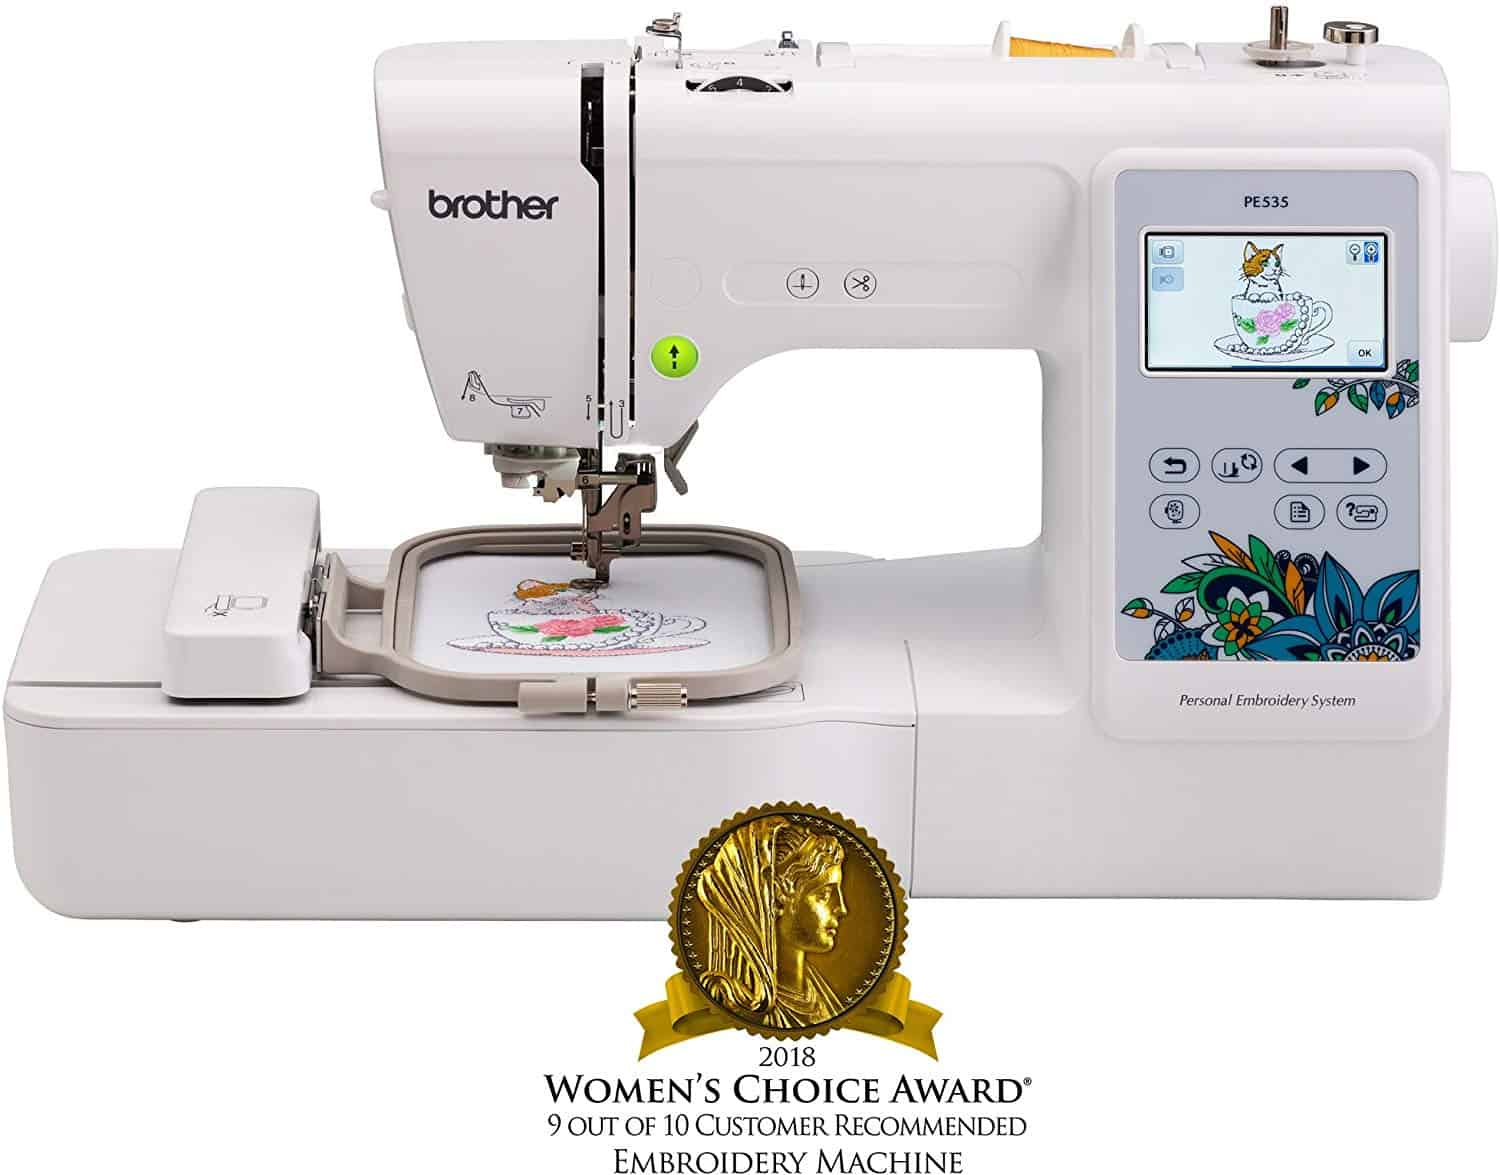 Brother embroidery machine.